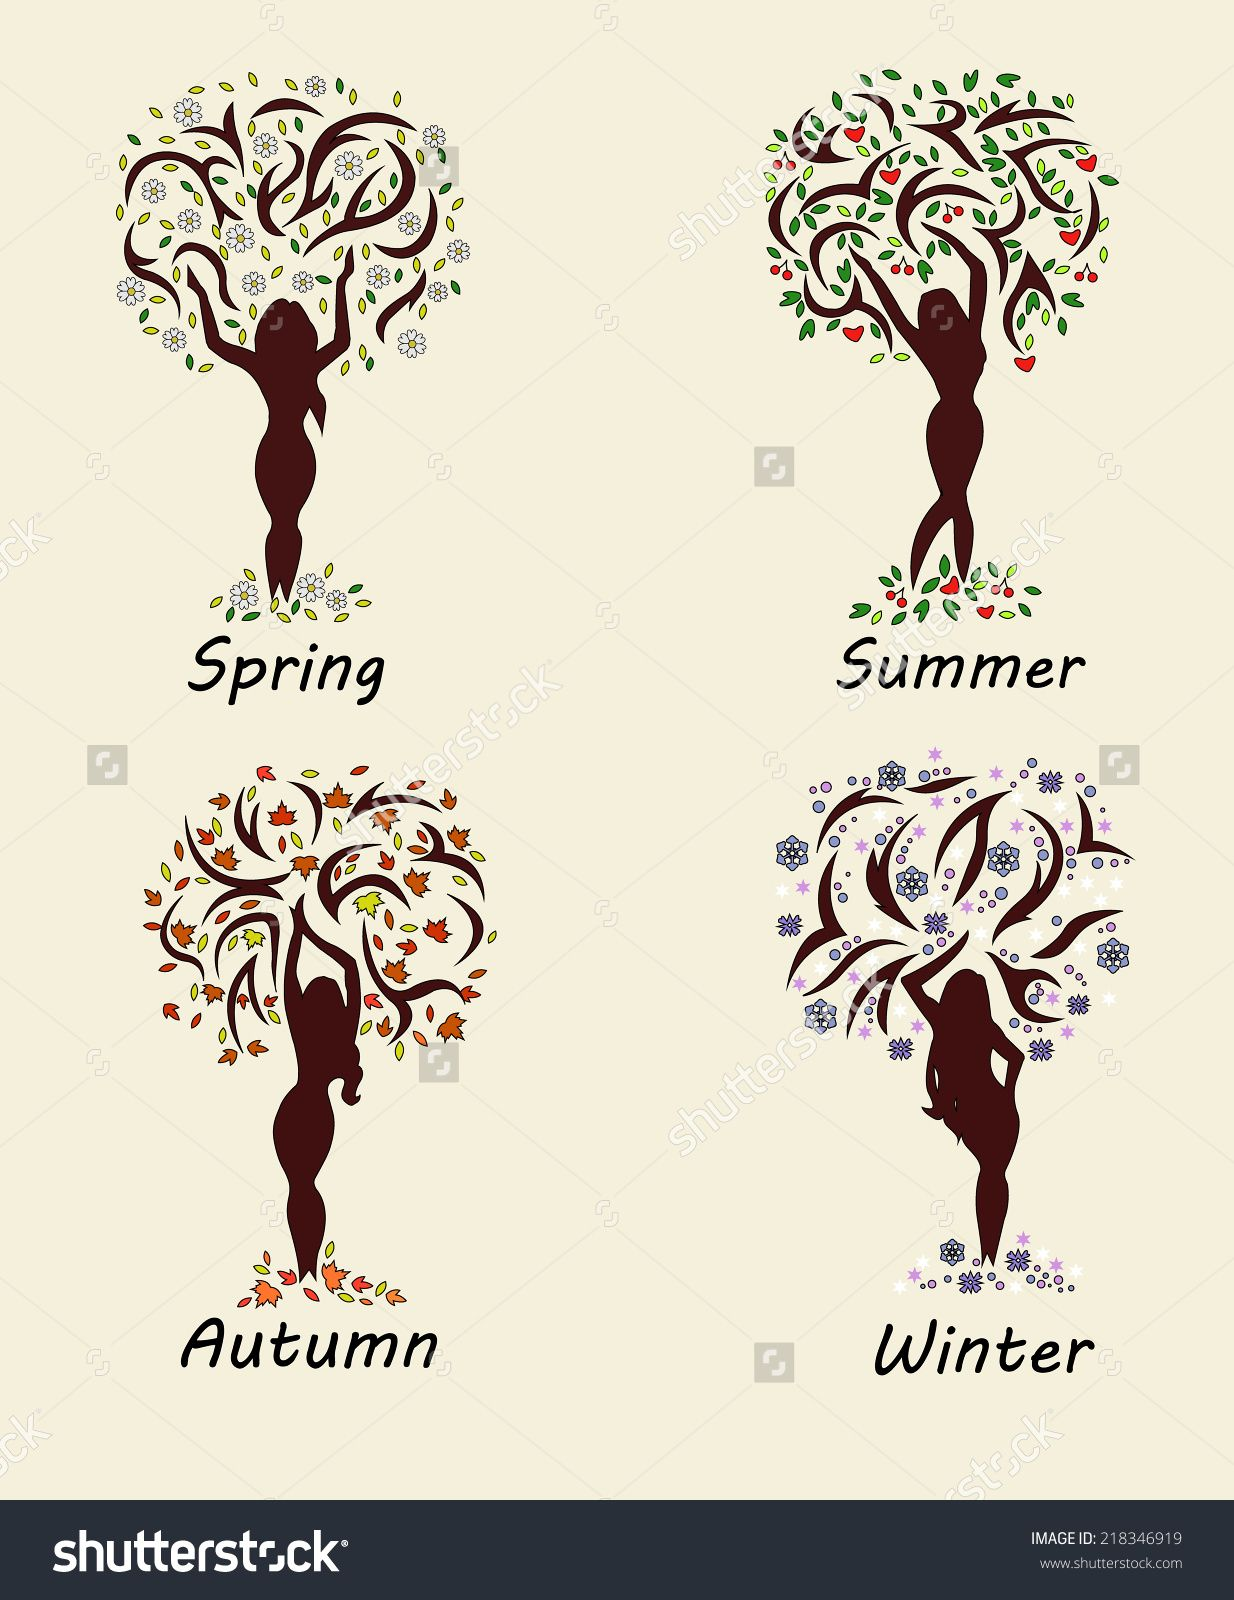 A woman tree in four seasons. Vector illustration.